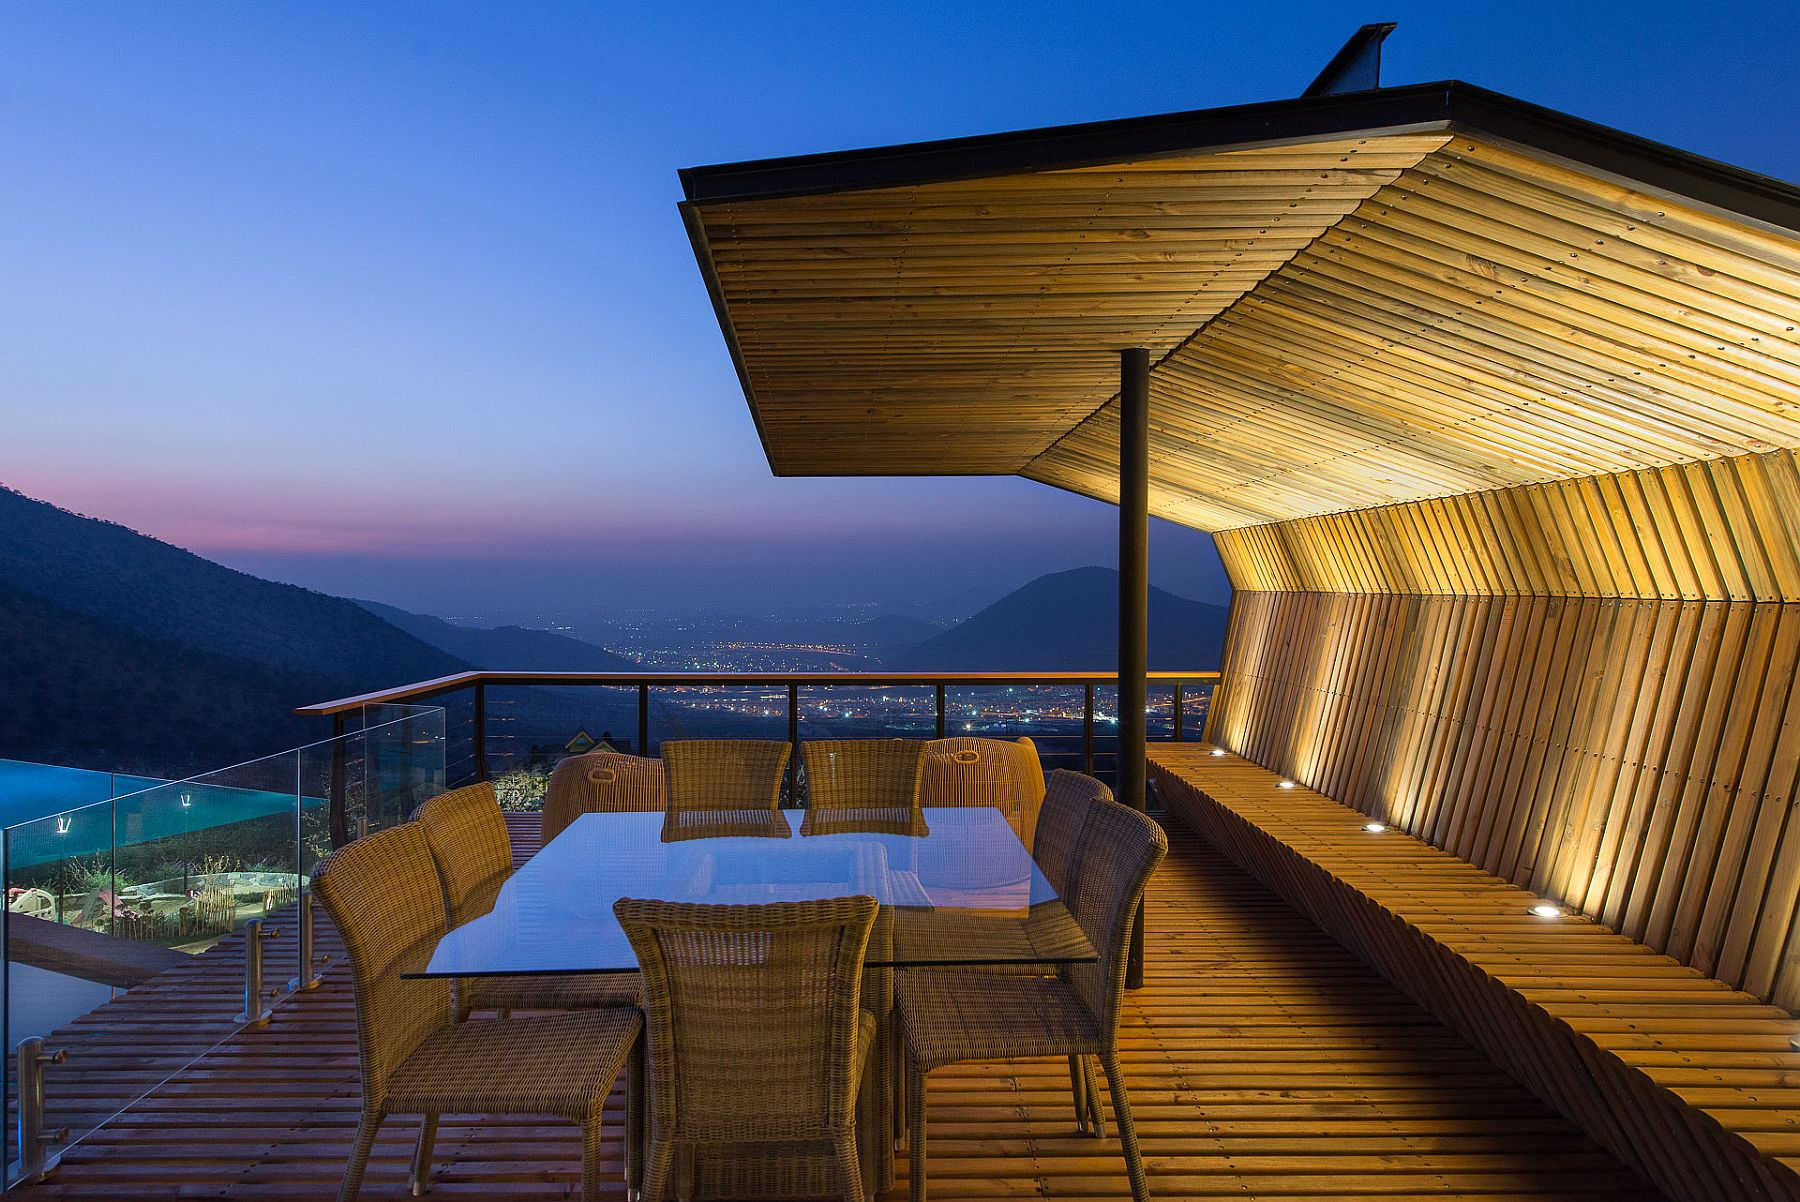 Open wooden deck along with a shaded sitting area with stunninv views of the valley